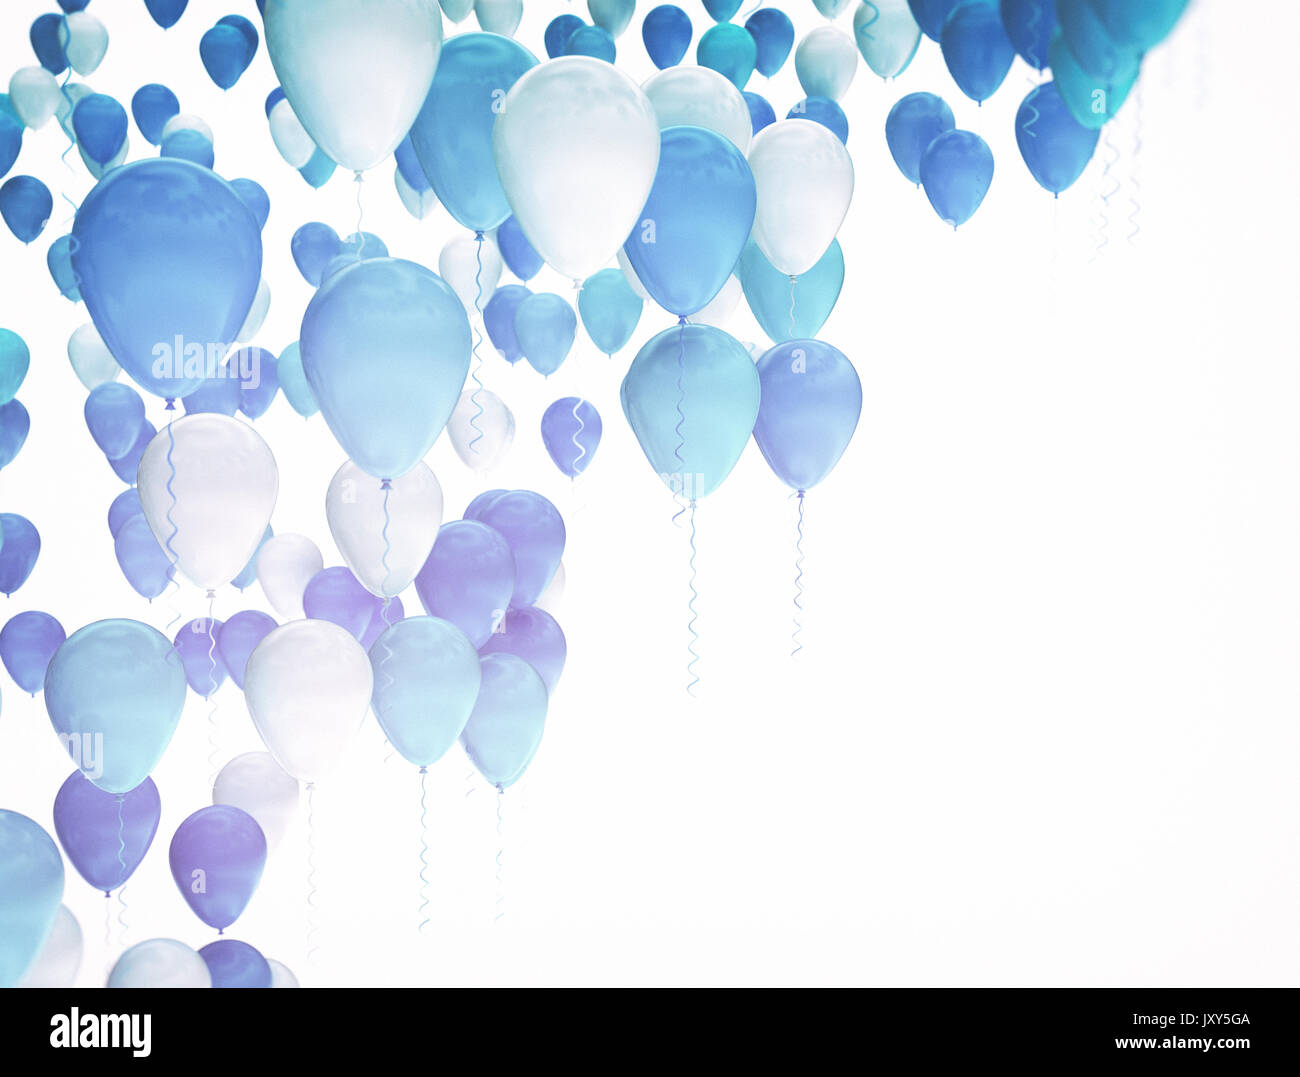 blue and white party balloons isolated on white background stock